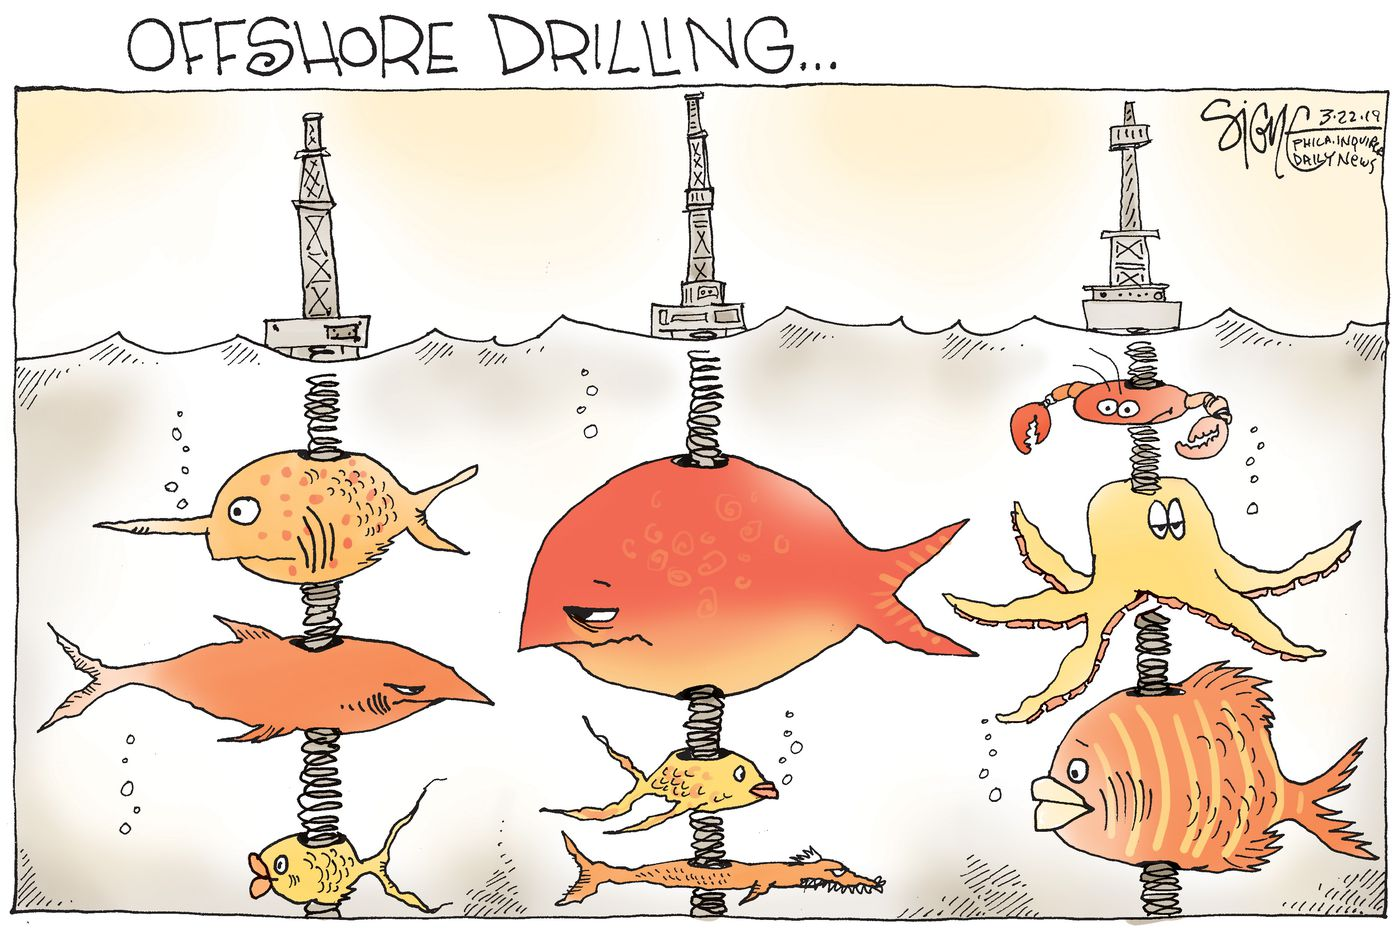 Political Cartoon: Offshore drilling for fish